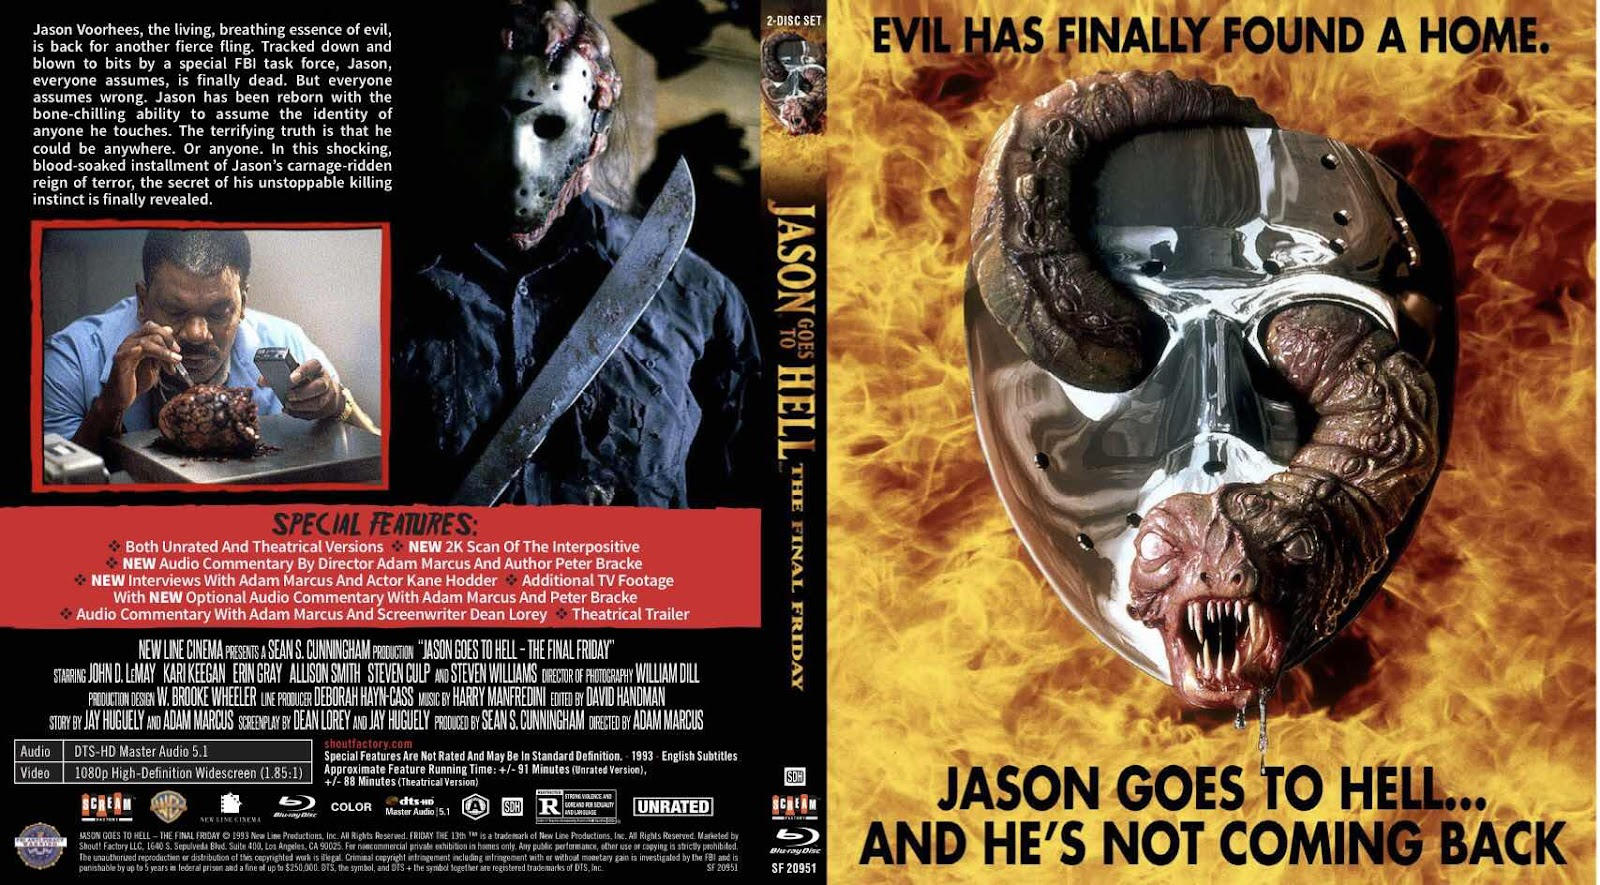 Check Out Each Film Cover Of Scream Factory's Friday The 13th Box Set